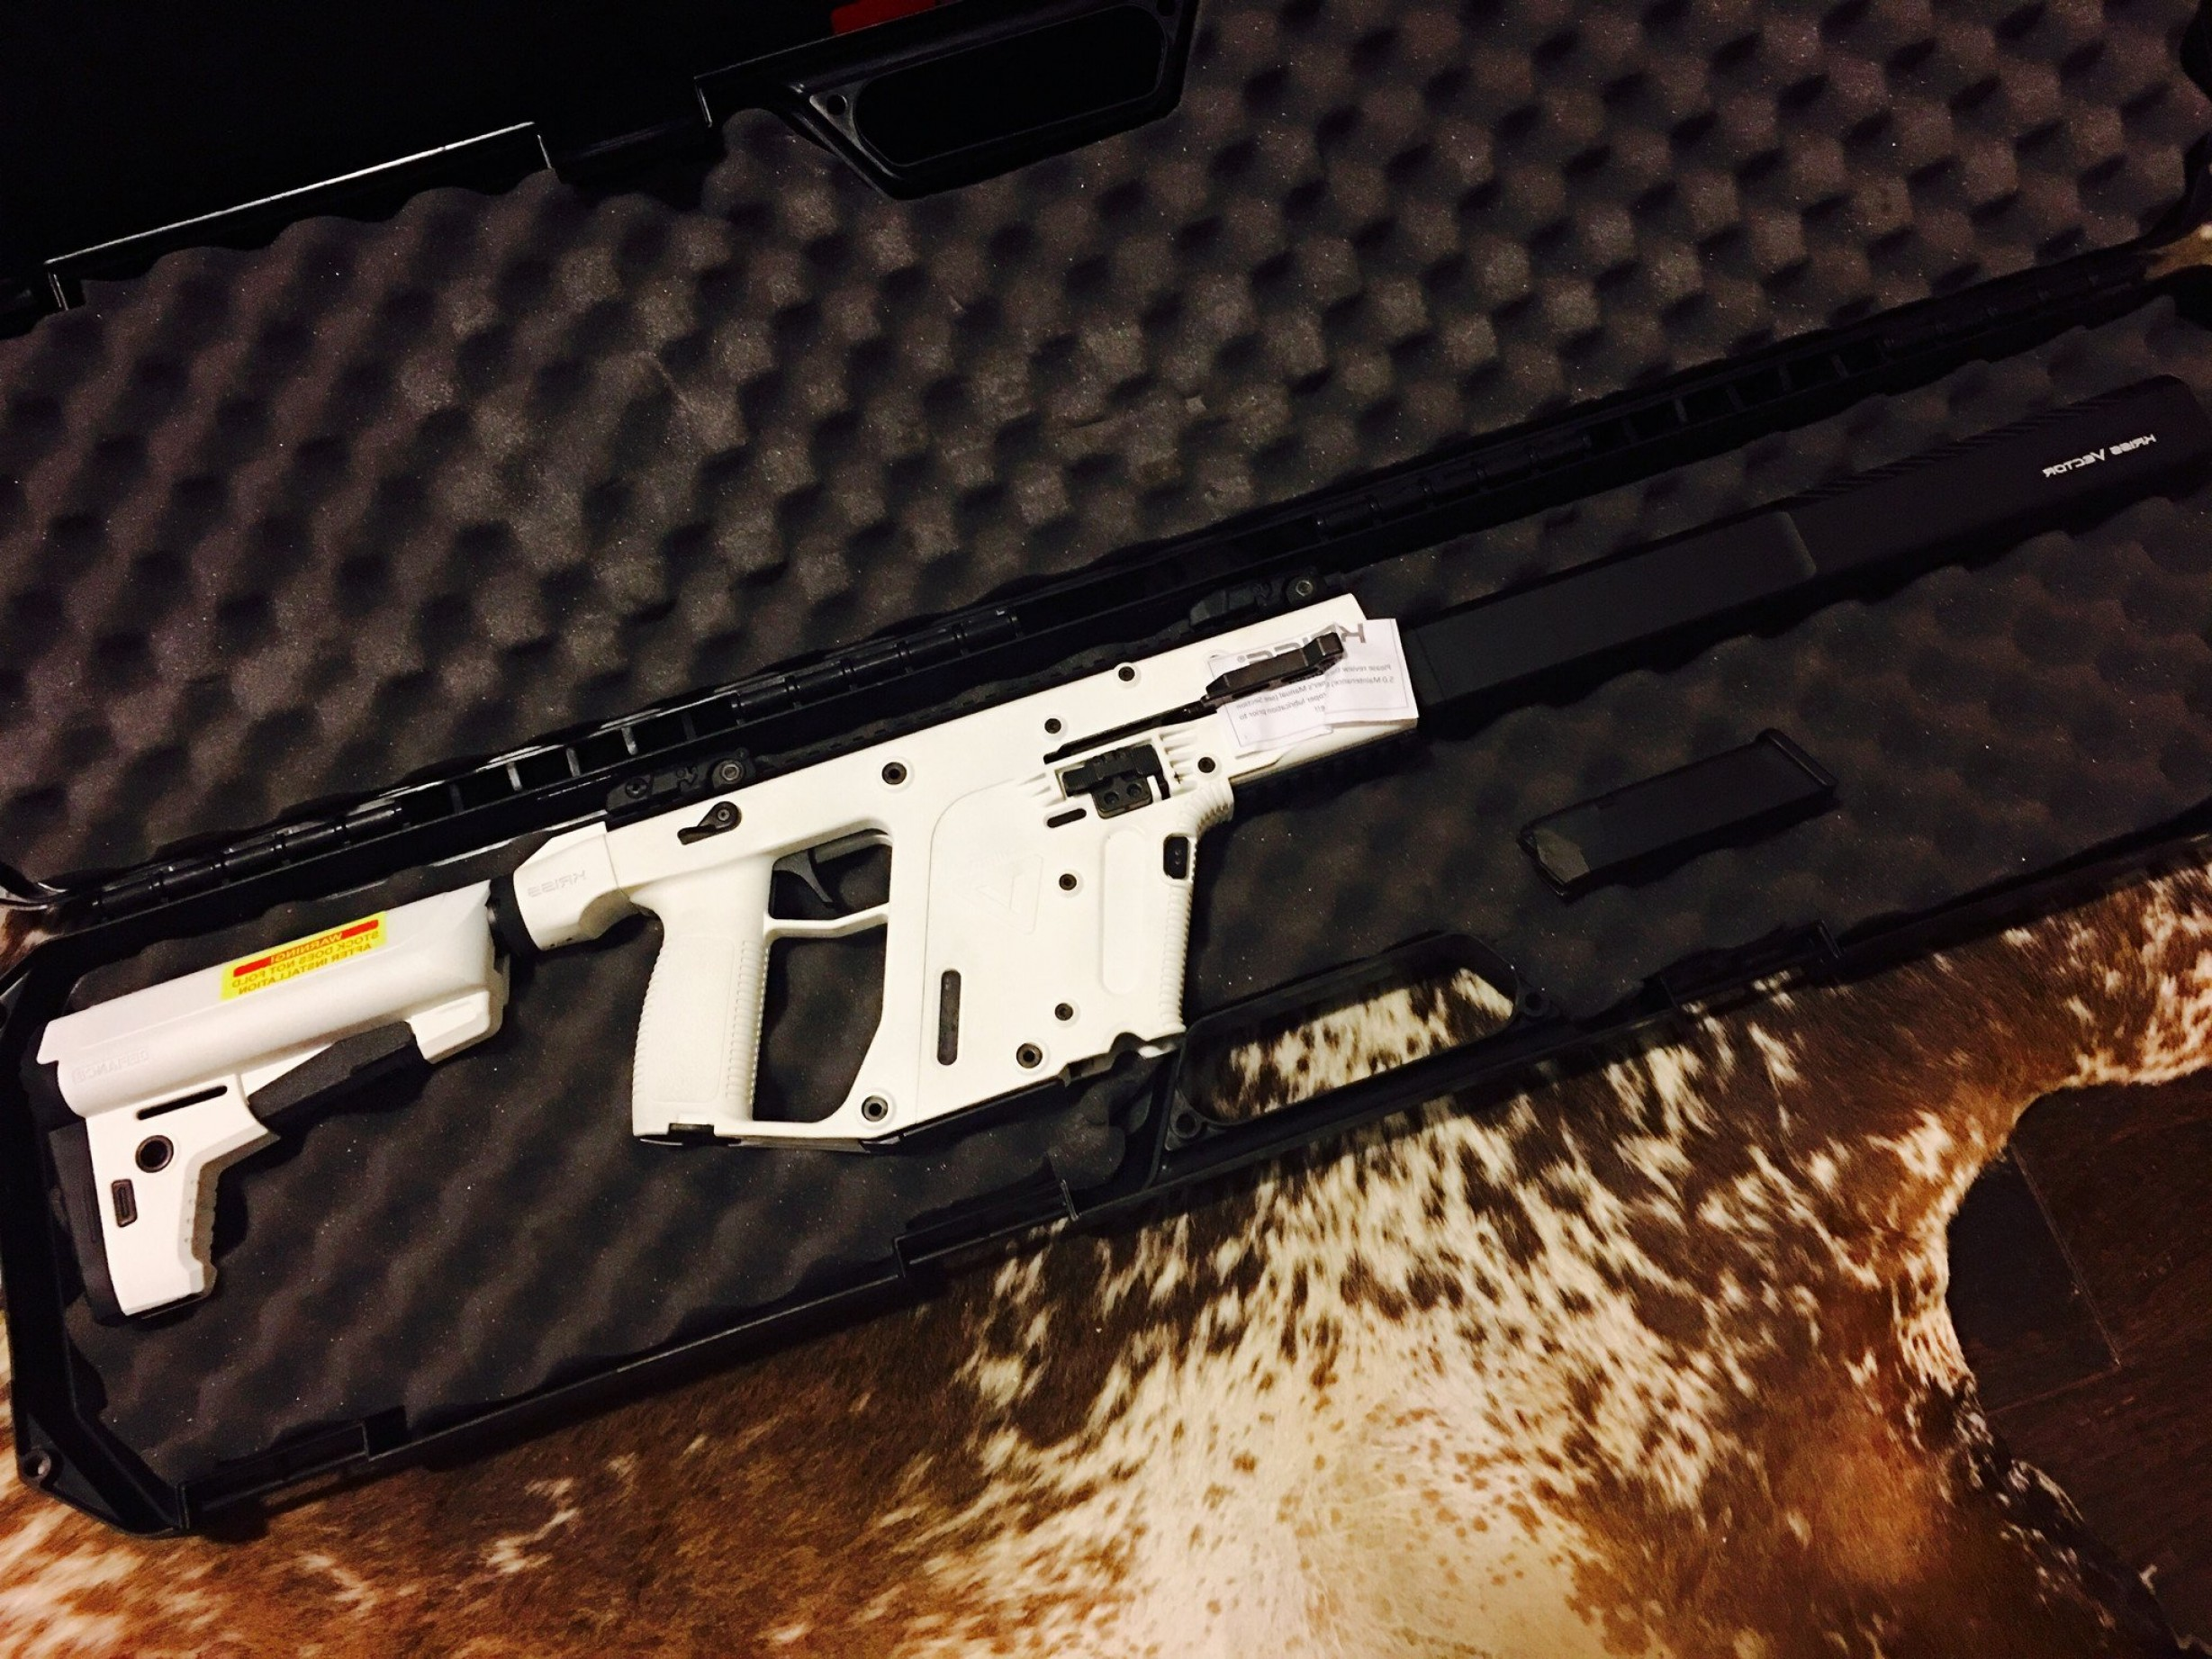 Kriss Vector 45ACP Carbine: Kriss Vector Gen Ii Crb In Mm And Acp And Mm Non Restrictedp